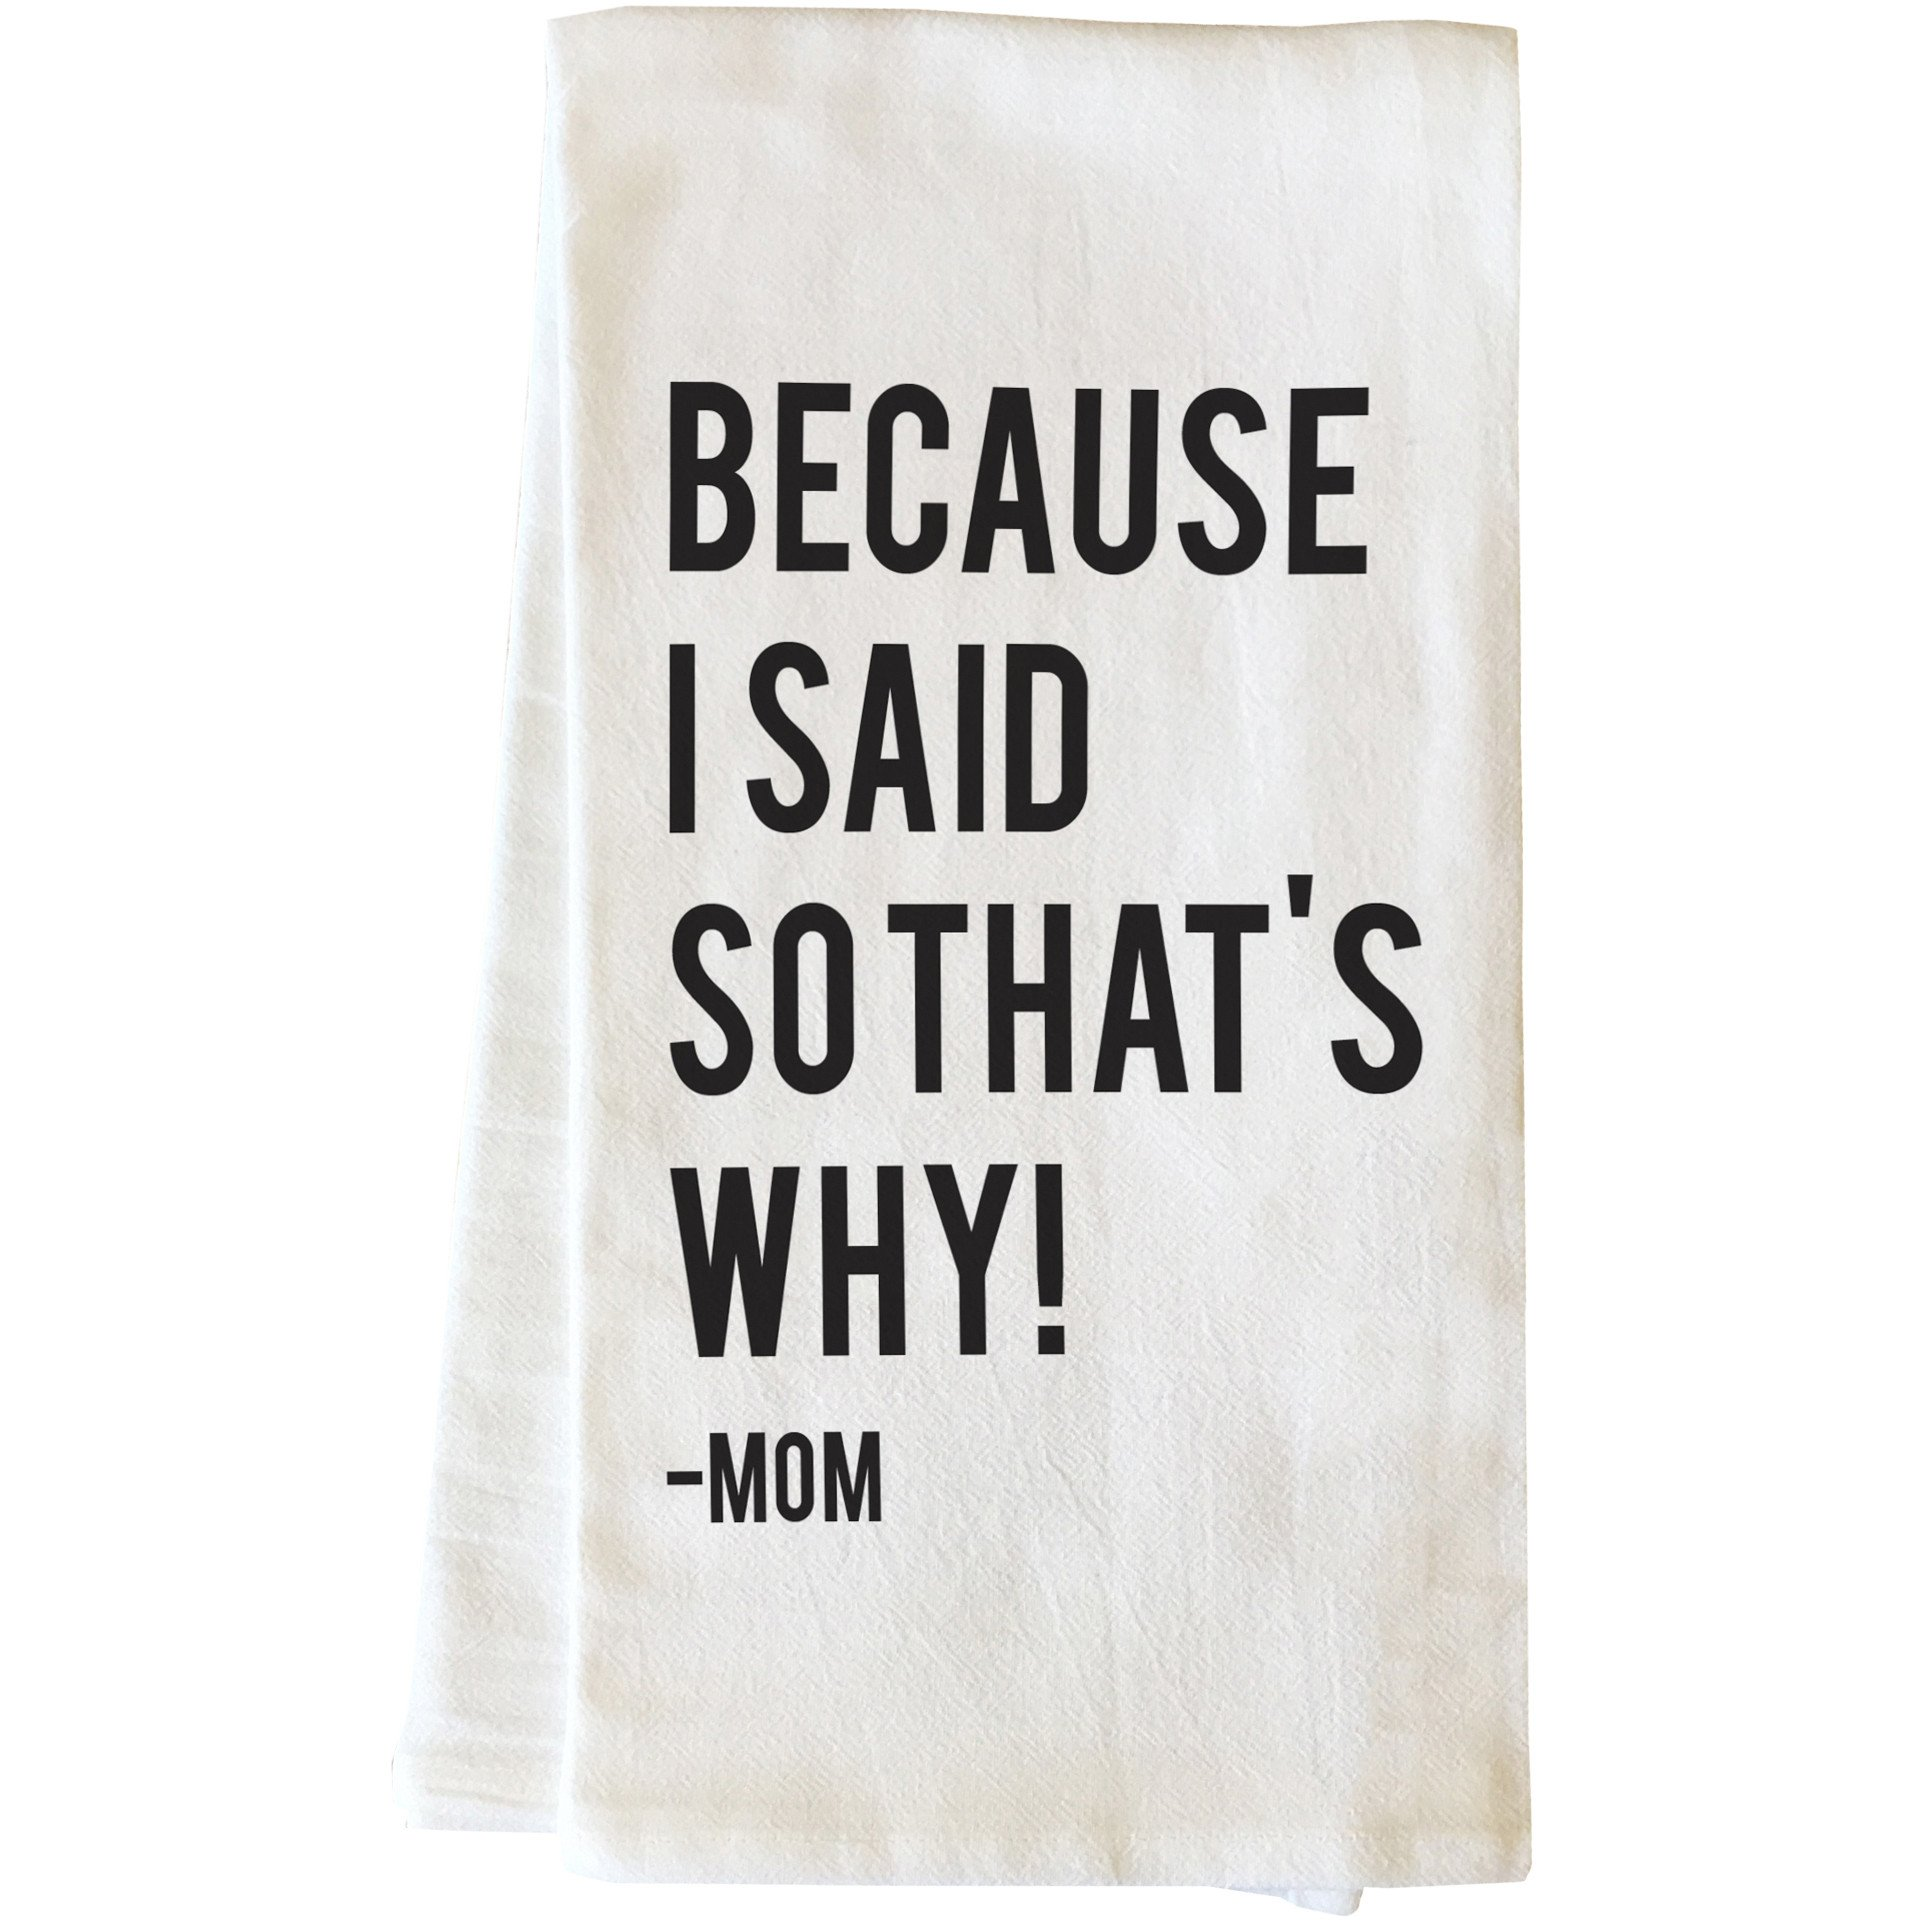 """Because I Said So That's Why - Mom"" Tea Towel by OneBellaCasa"